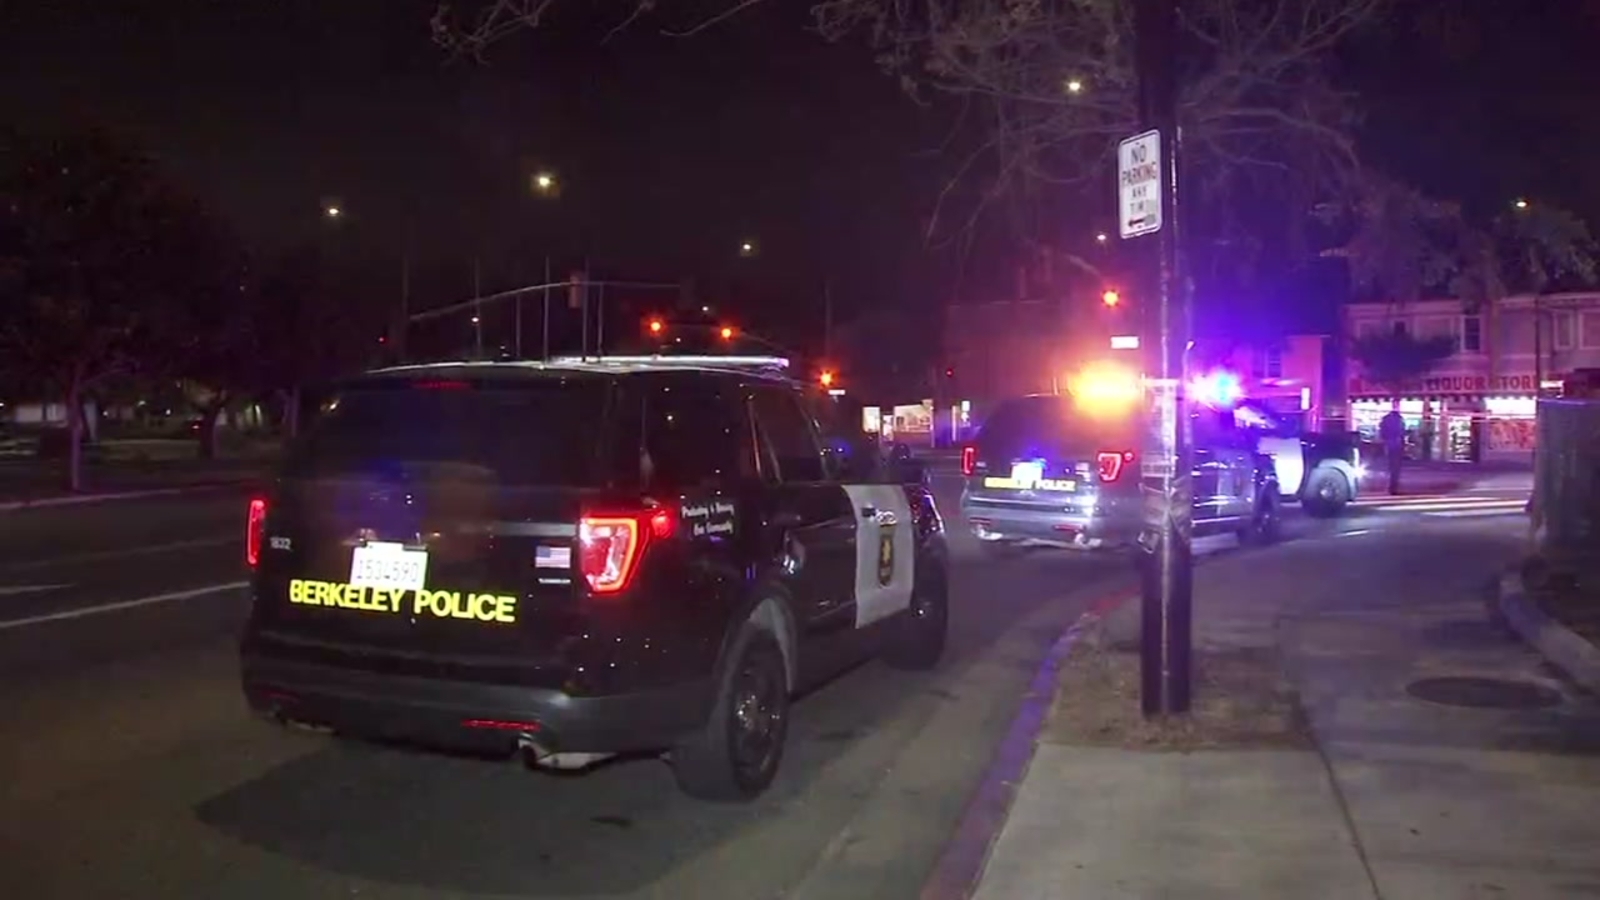 Person struck, killed in hit-and-run near Ashby BART station in Berkeley